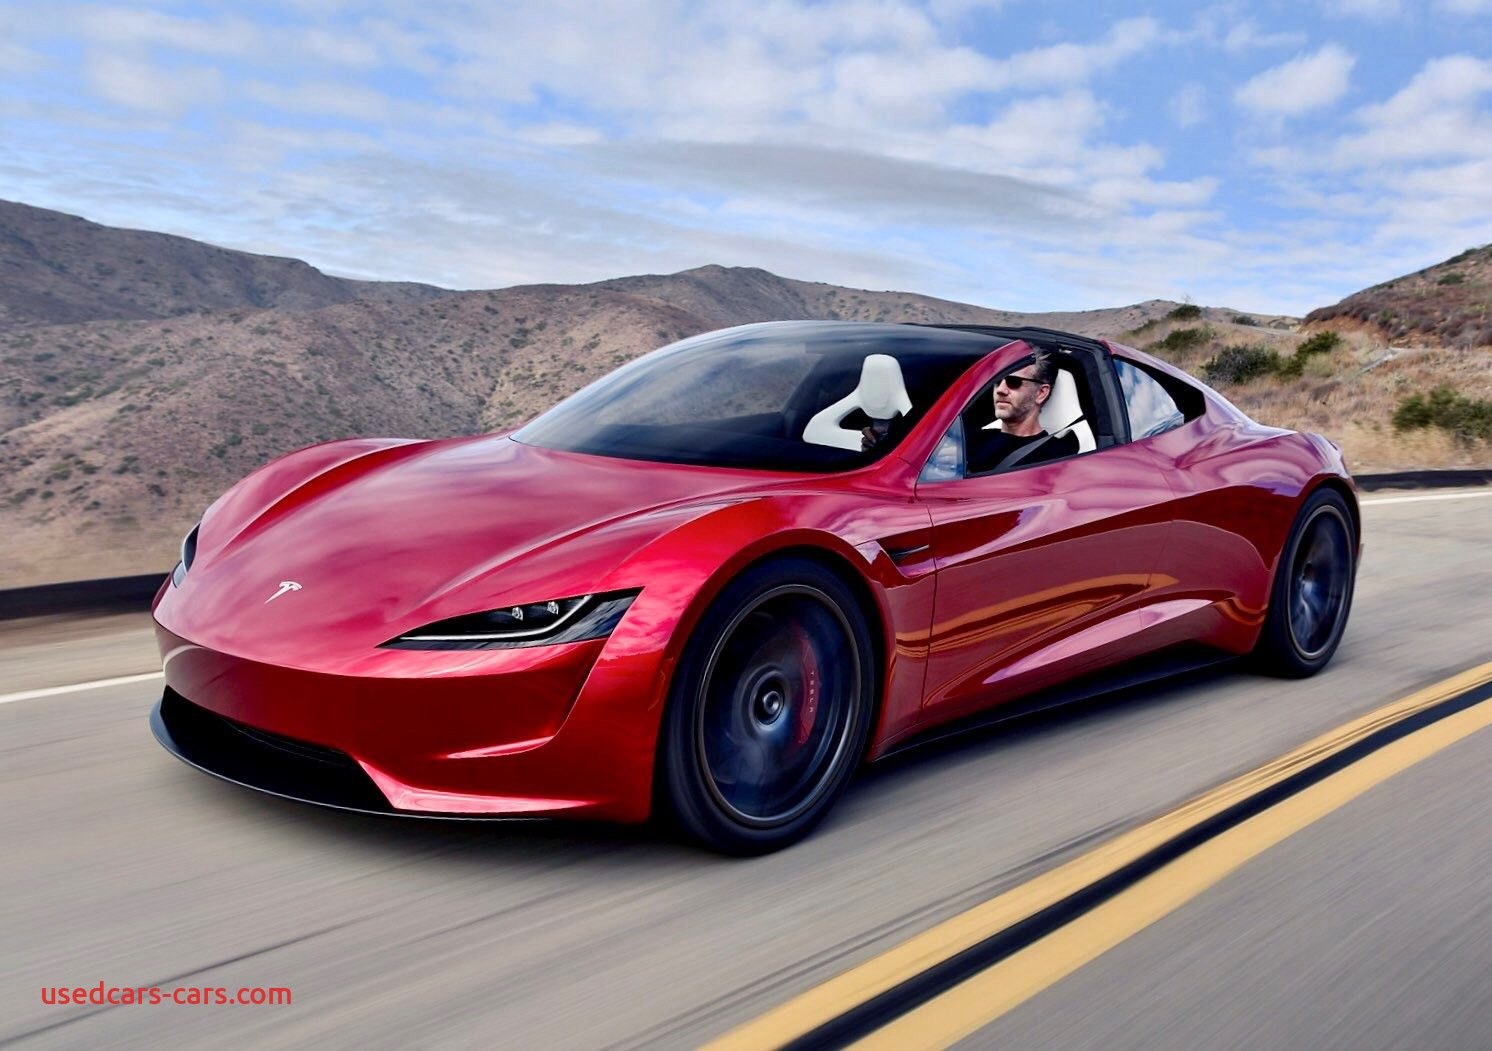 Where Tesla Car From Beautiful New Tesla Roadster Musk Hints At Rocket Powered In 2020 New Tesla Roadster Tesla Car Tesla Roadster